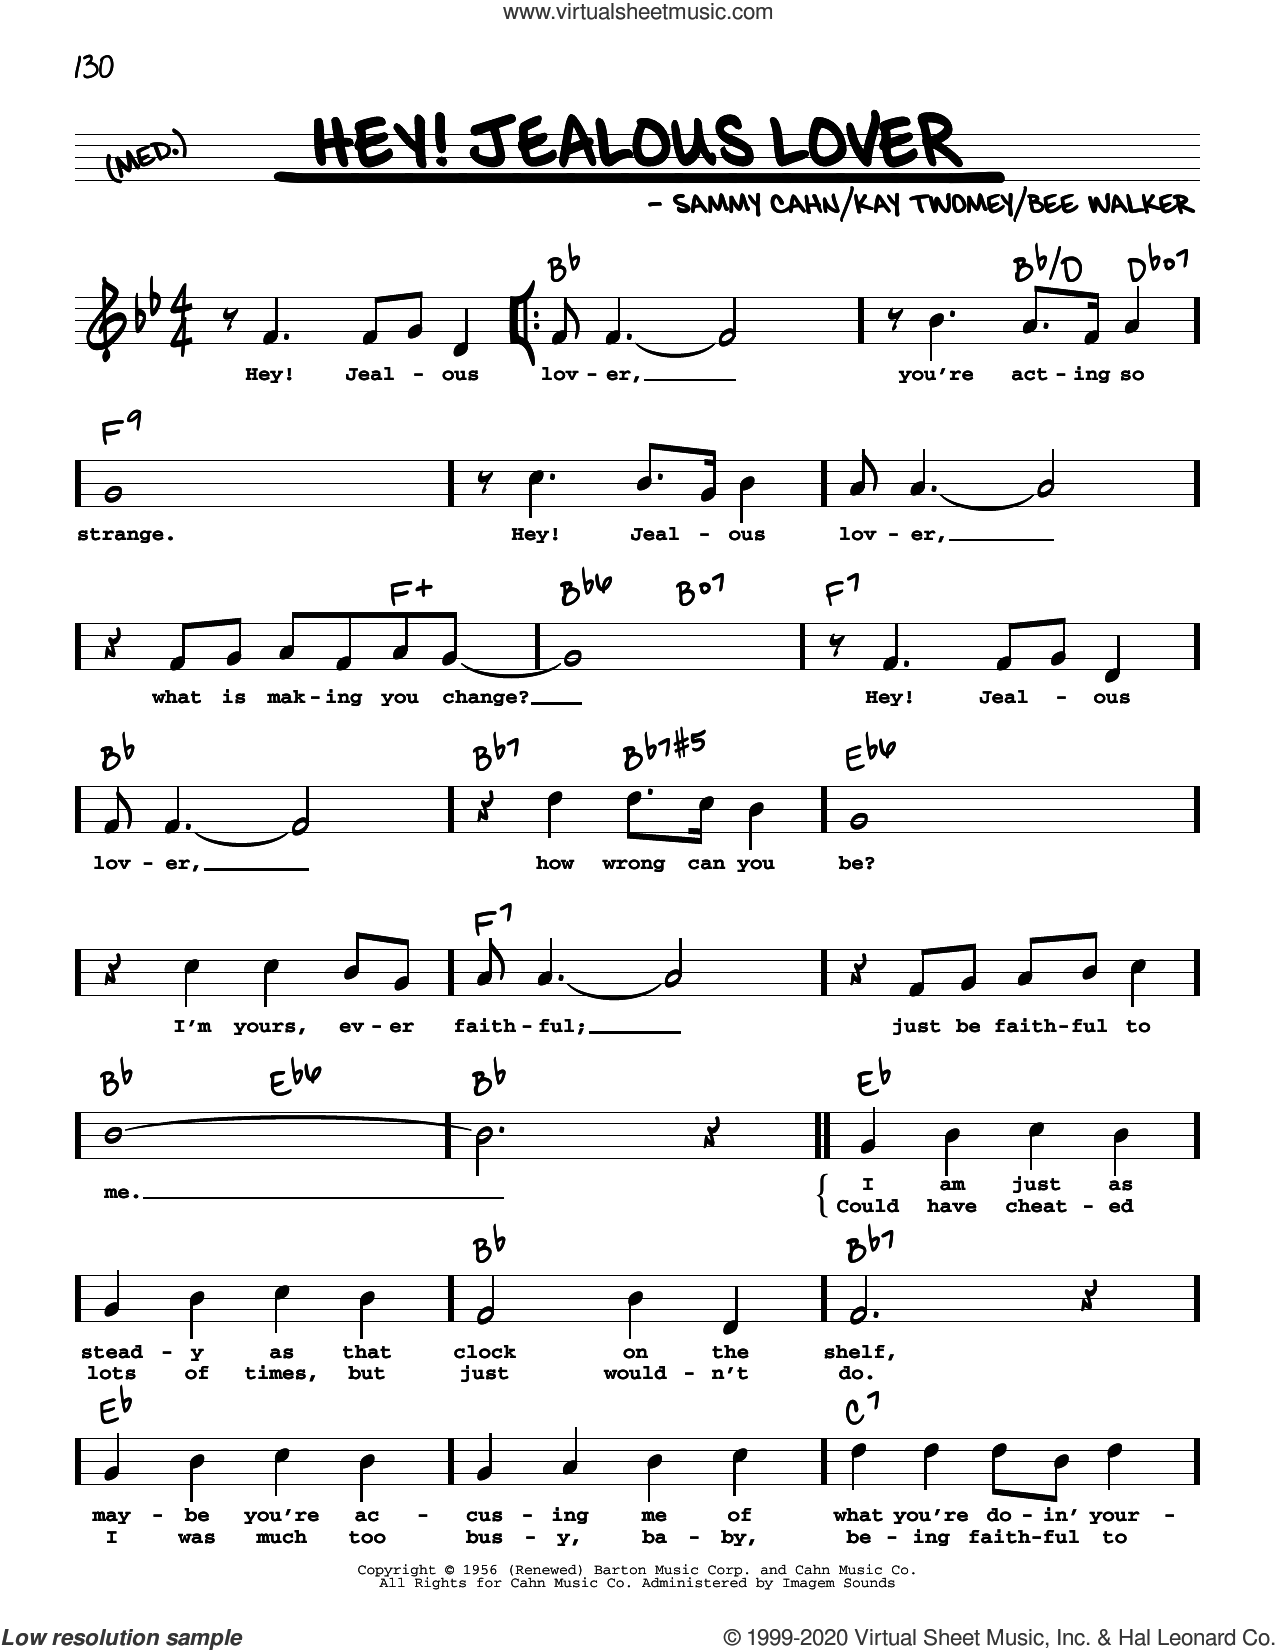 Hey! Jealous Lover (High Voice) sheet music for voice and other instruments (high voice) by Sammy Cahn, Bee Walker and Kay Twomey, intermediate skill level